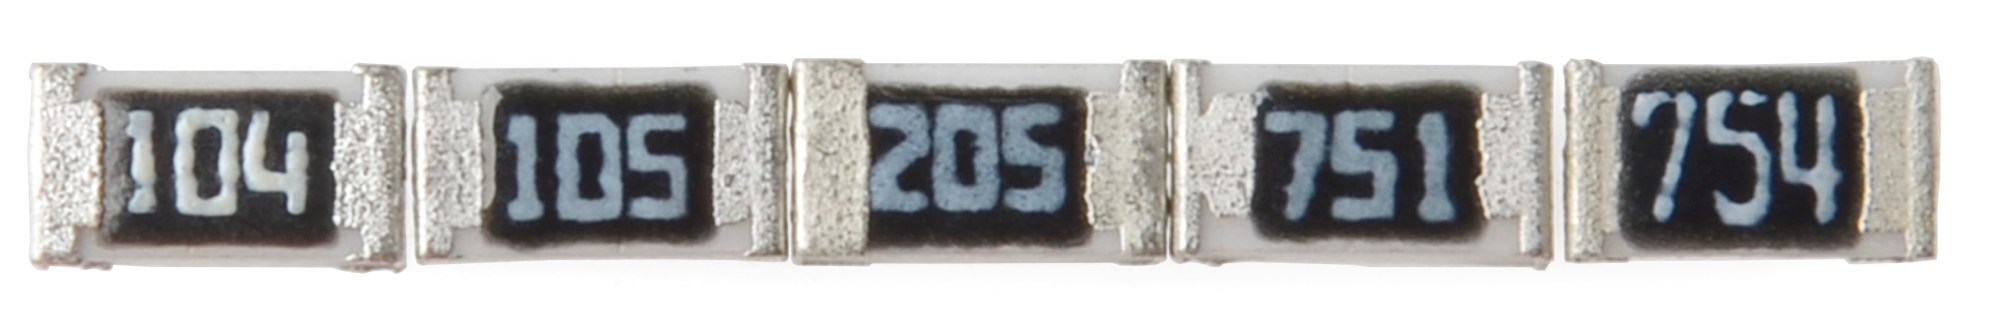 hight resolution of examples of e 24 marked smd resistors